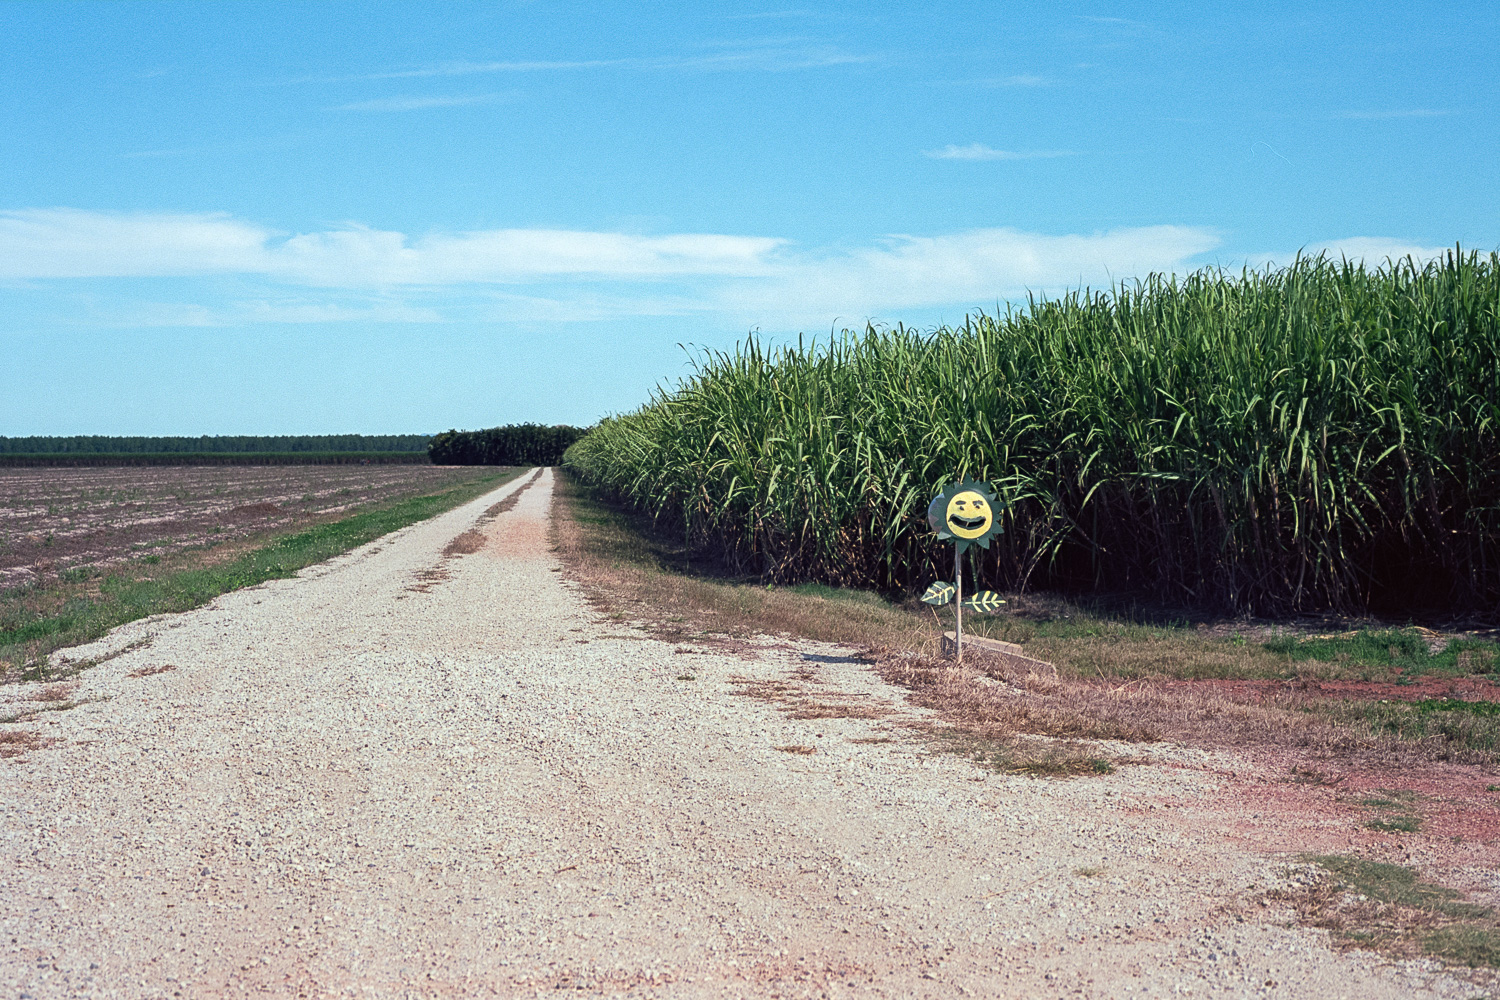 Cane fields are something else.